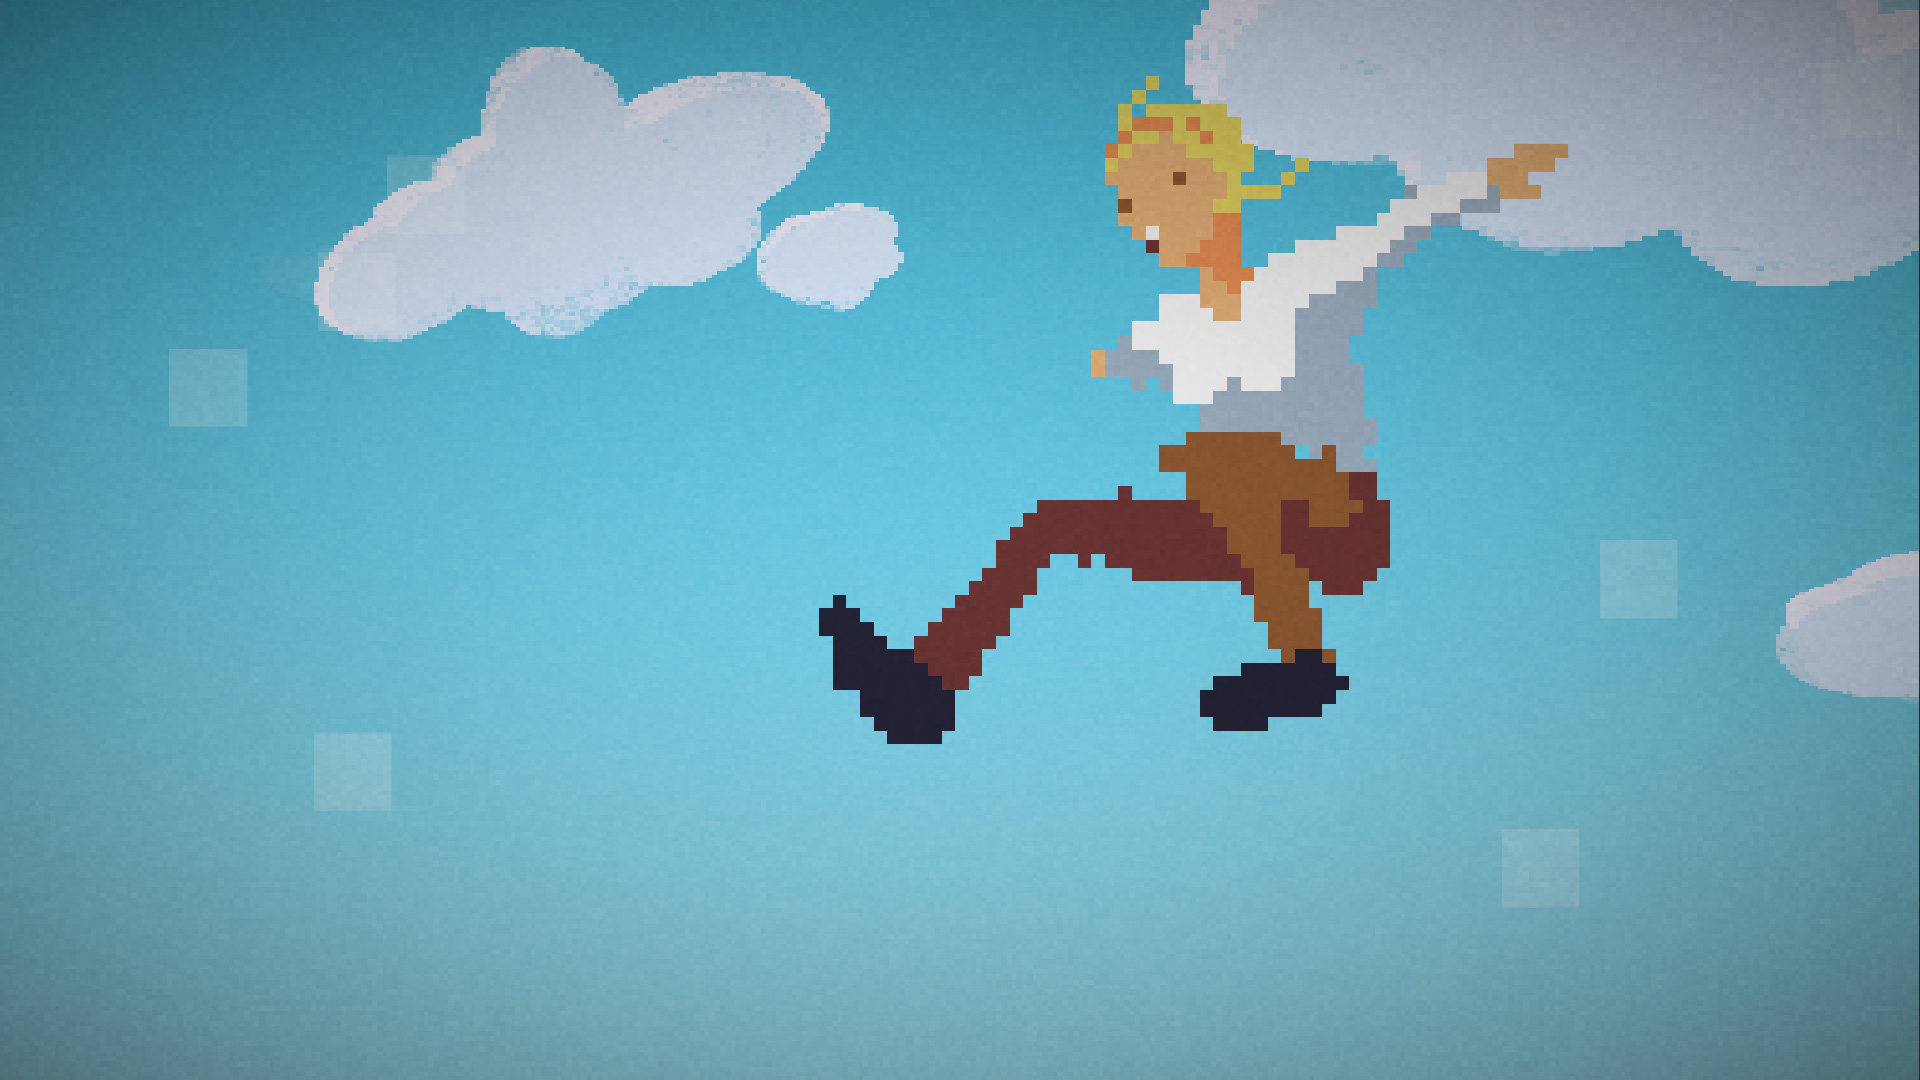 Game image Milkmaid of the Milky Way